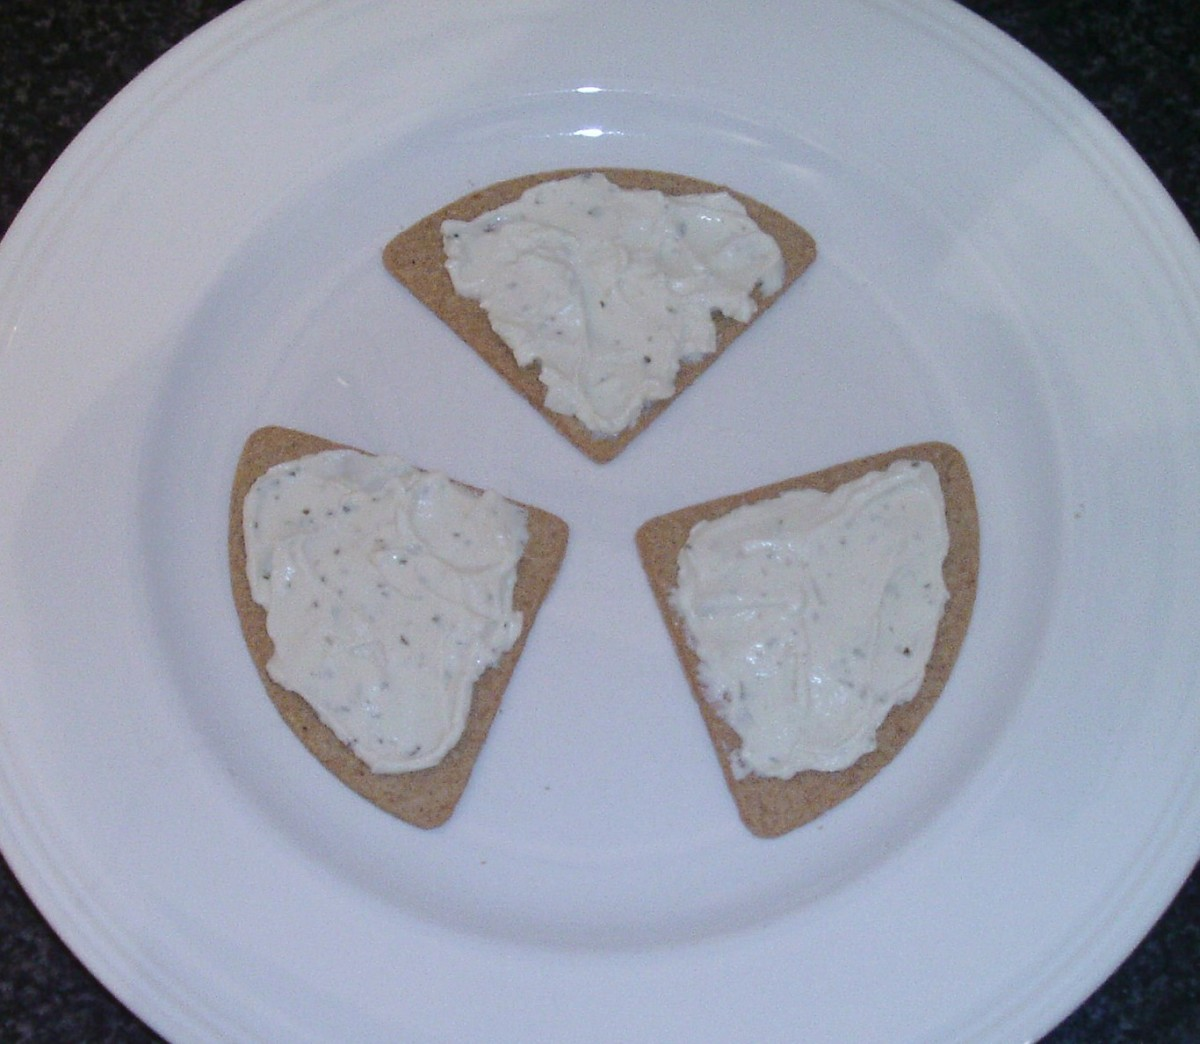 Cream cheese is spread on oatcakes